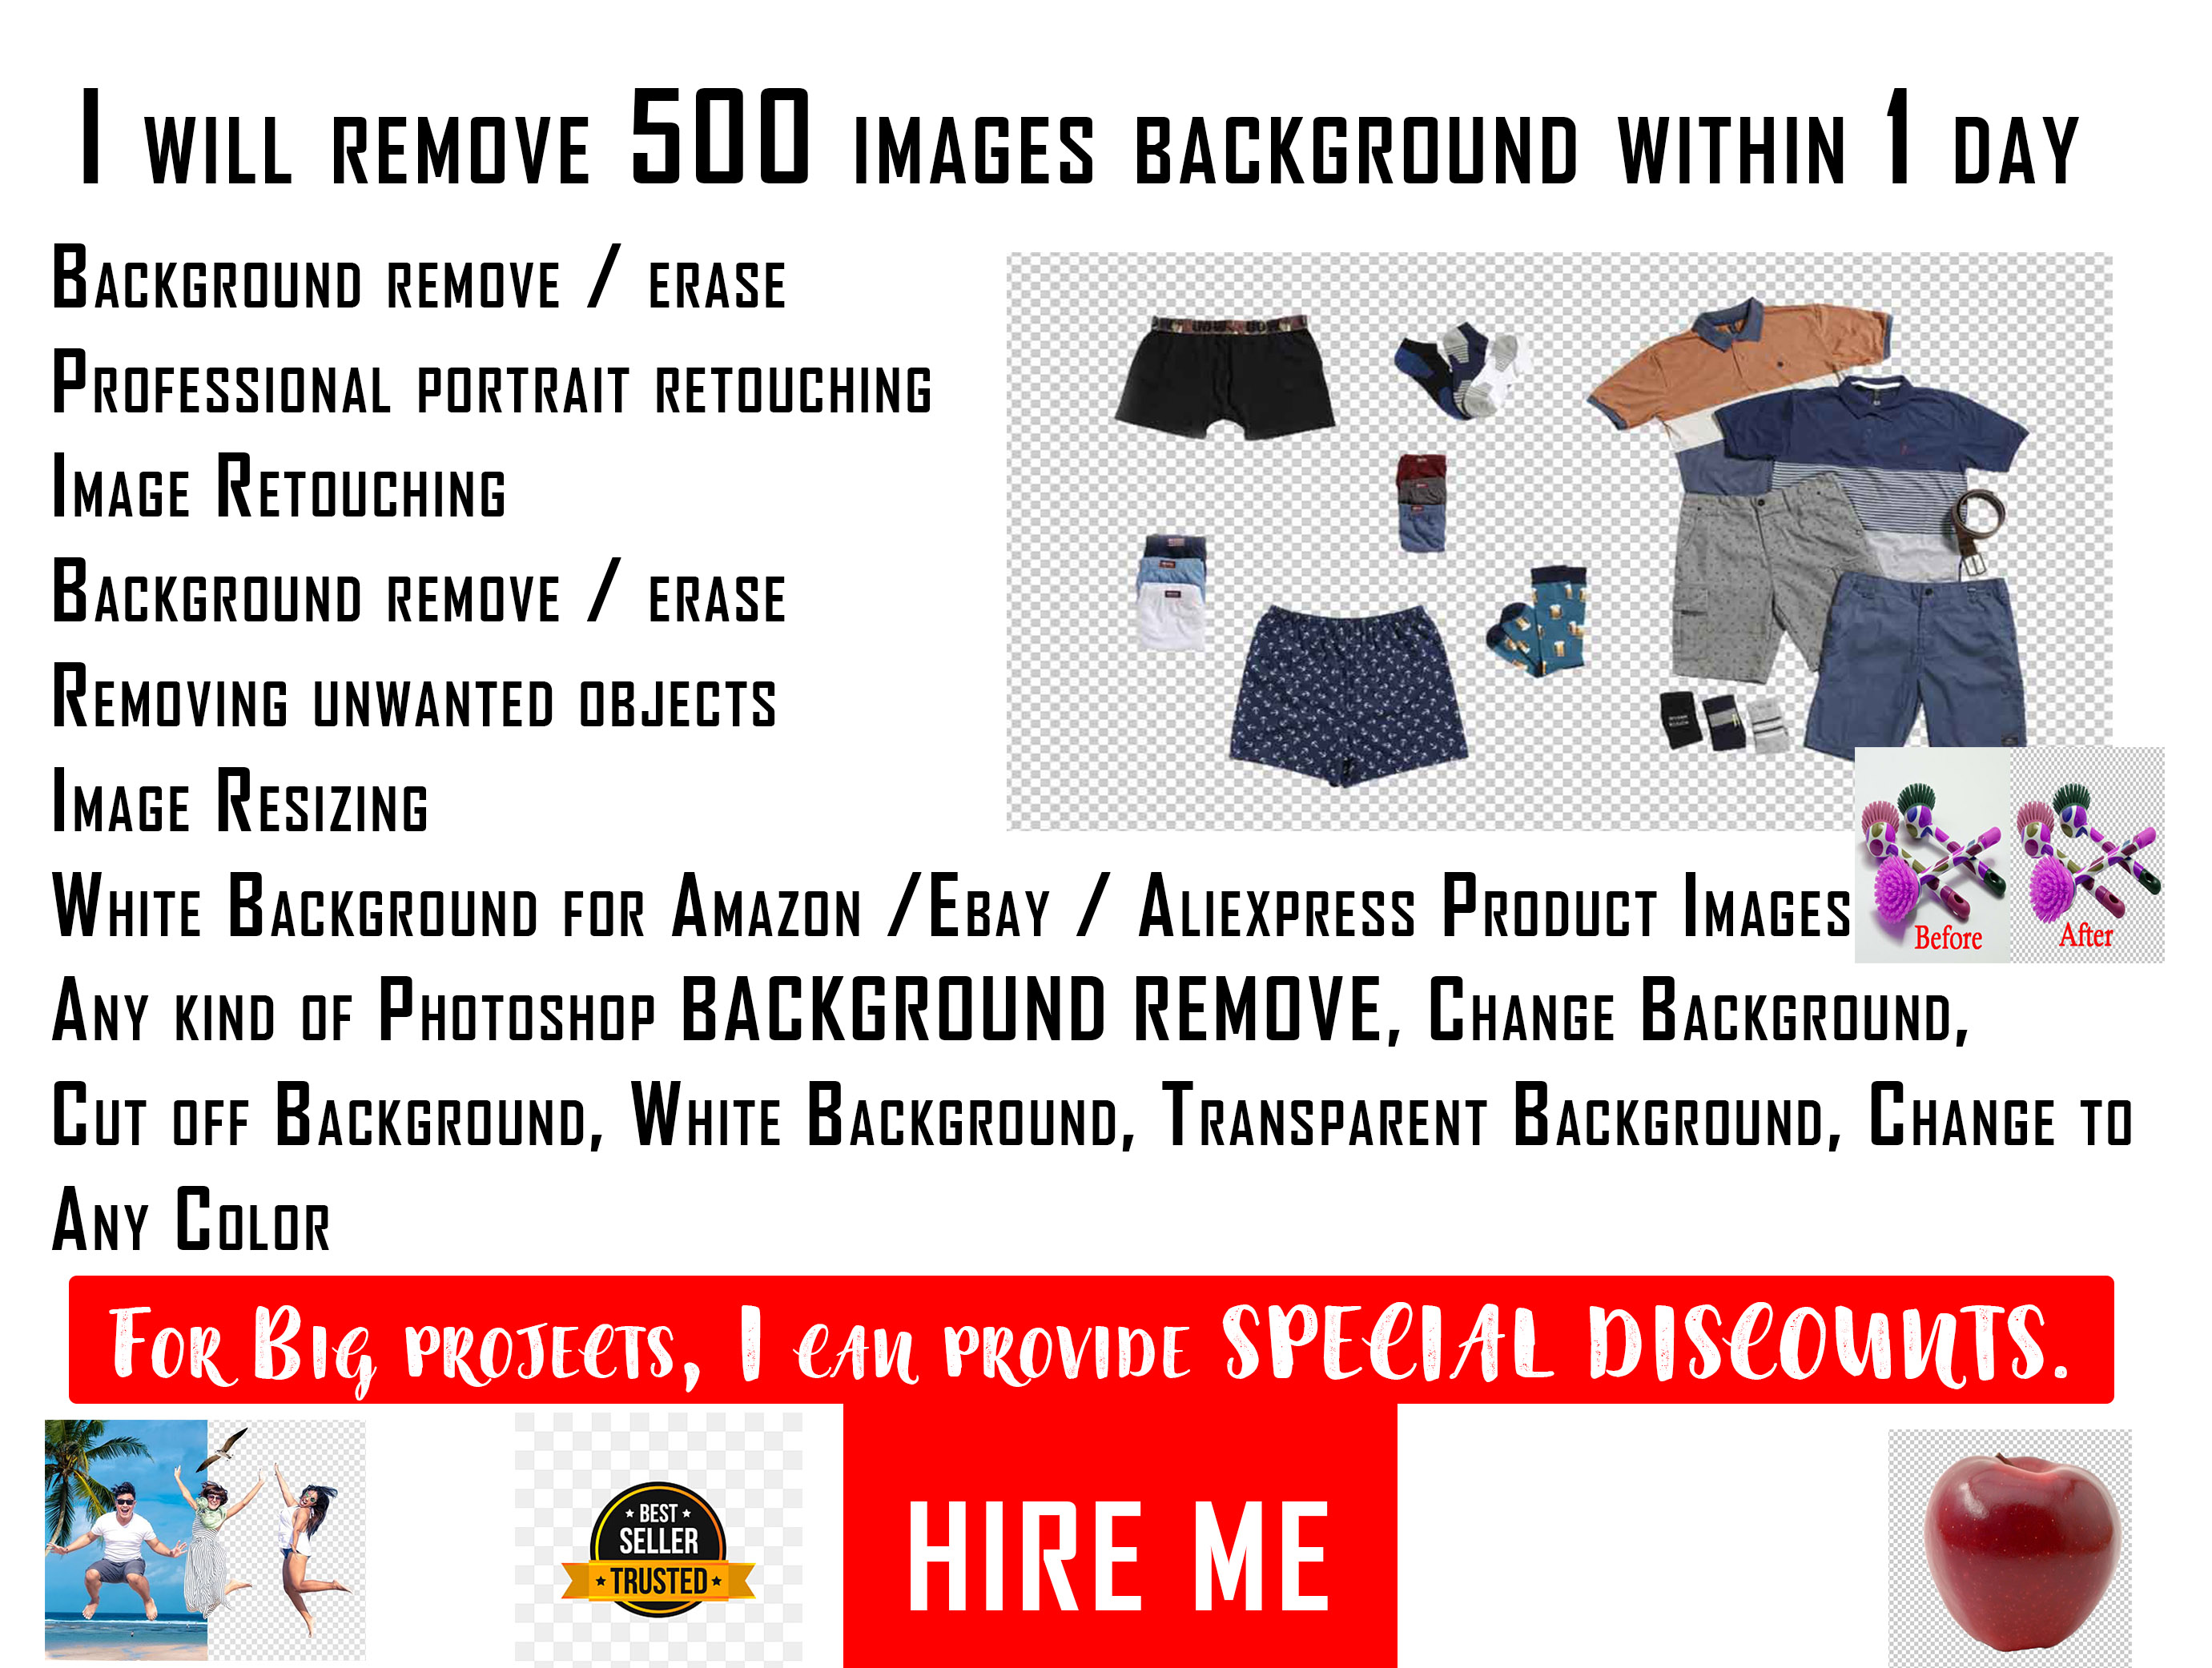 Photoshop editing background removal of 500 images 12 hours